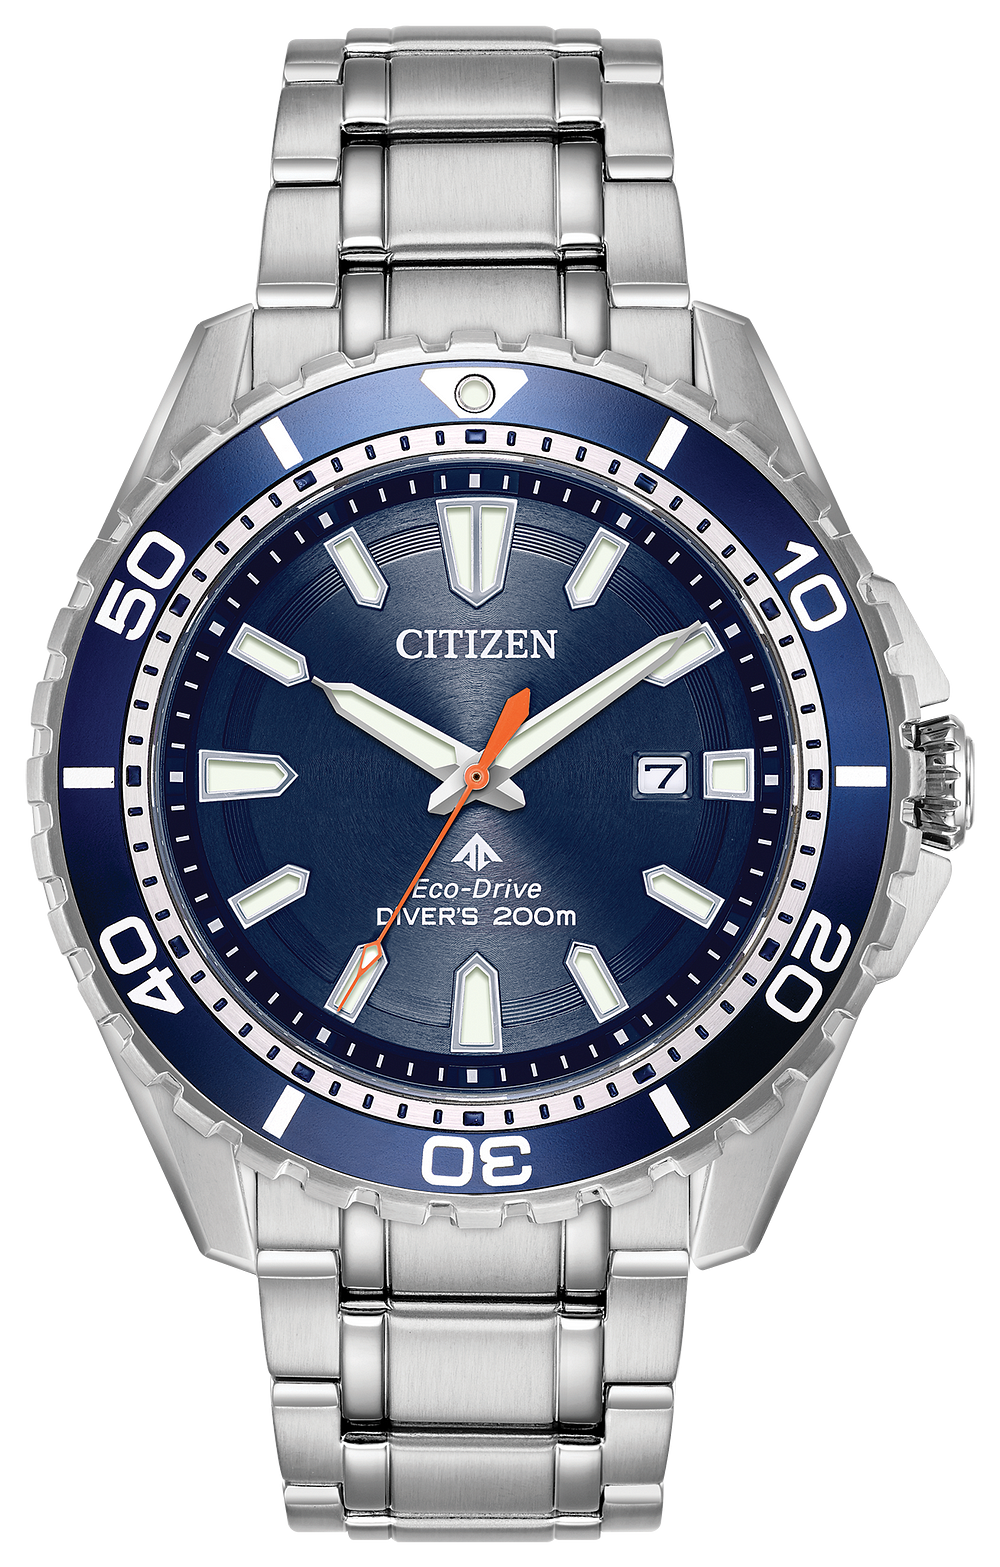 https://embed.widencdn.net/img/citizenwatch/yph940eeal/1000px/Promaster%20Diver.png?u=41zuoe